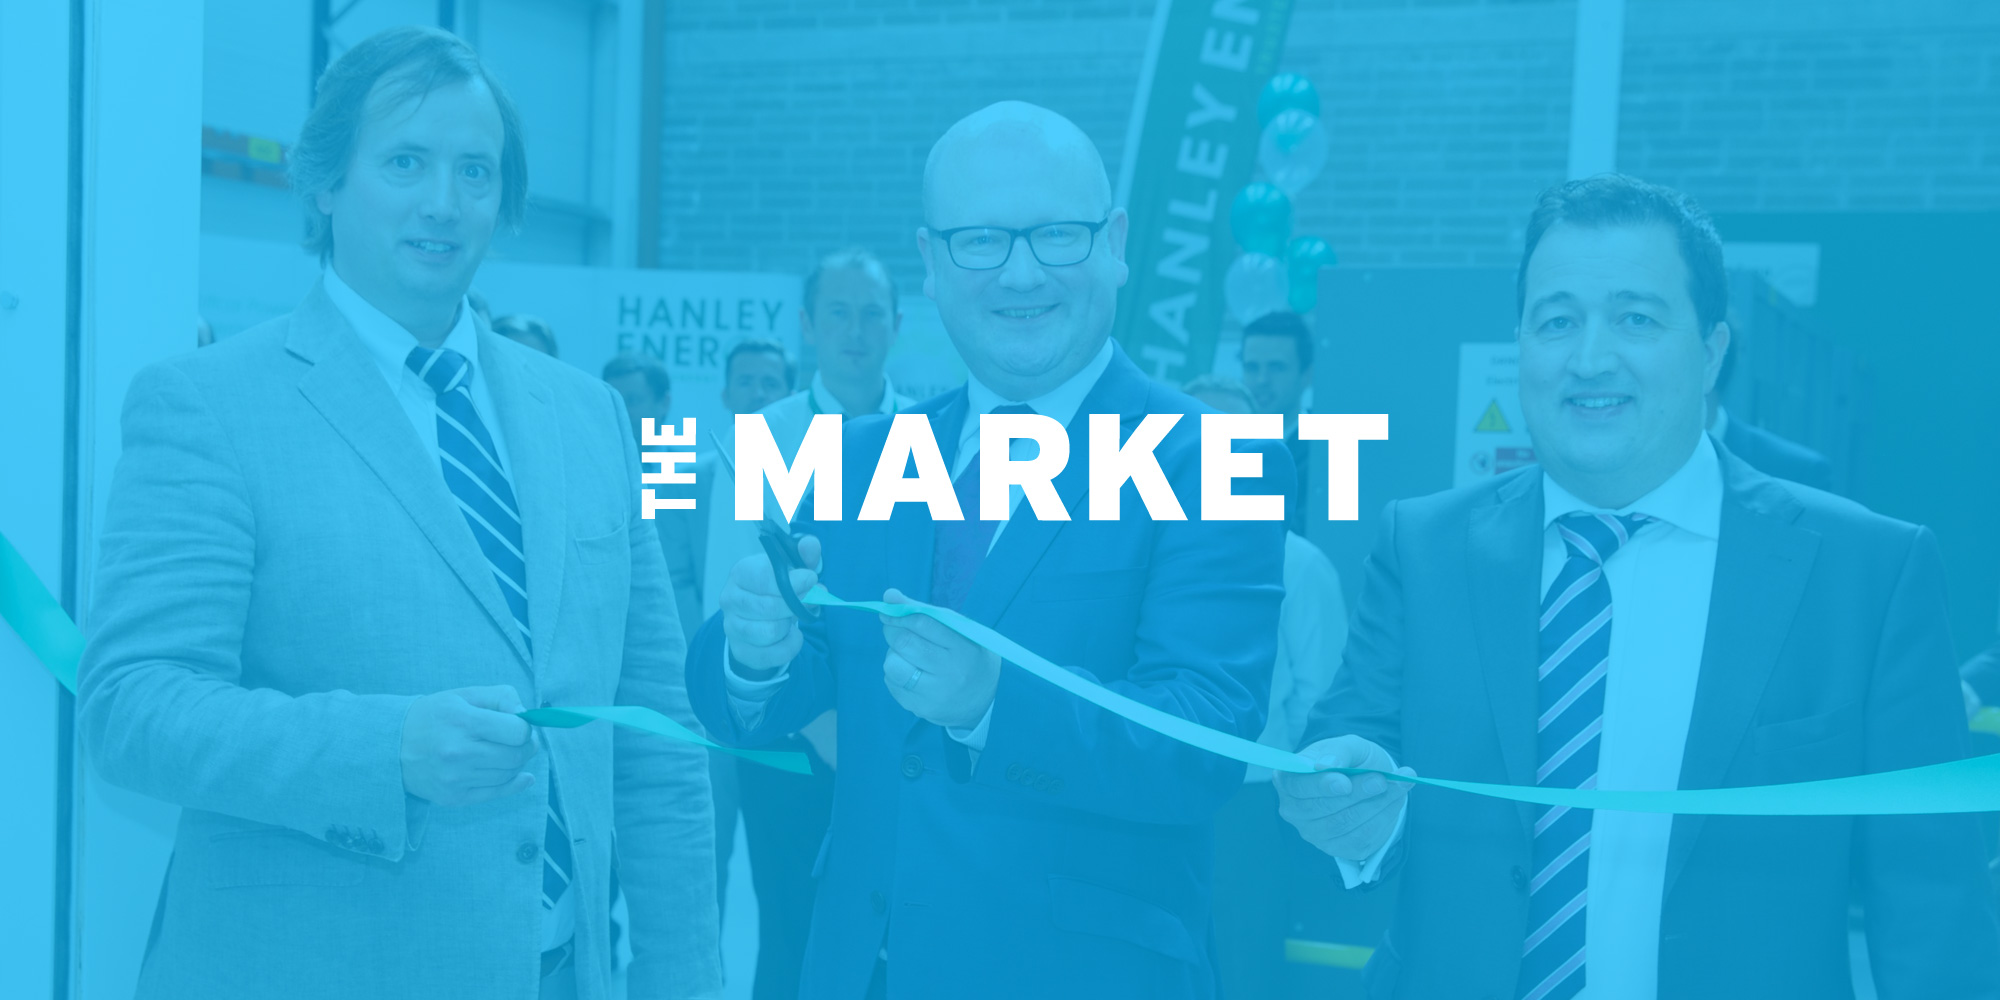 The Market Competing in a Global Marketplace